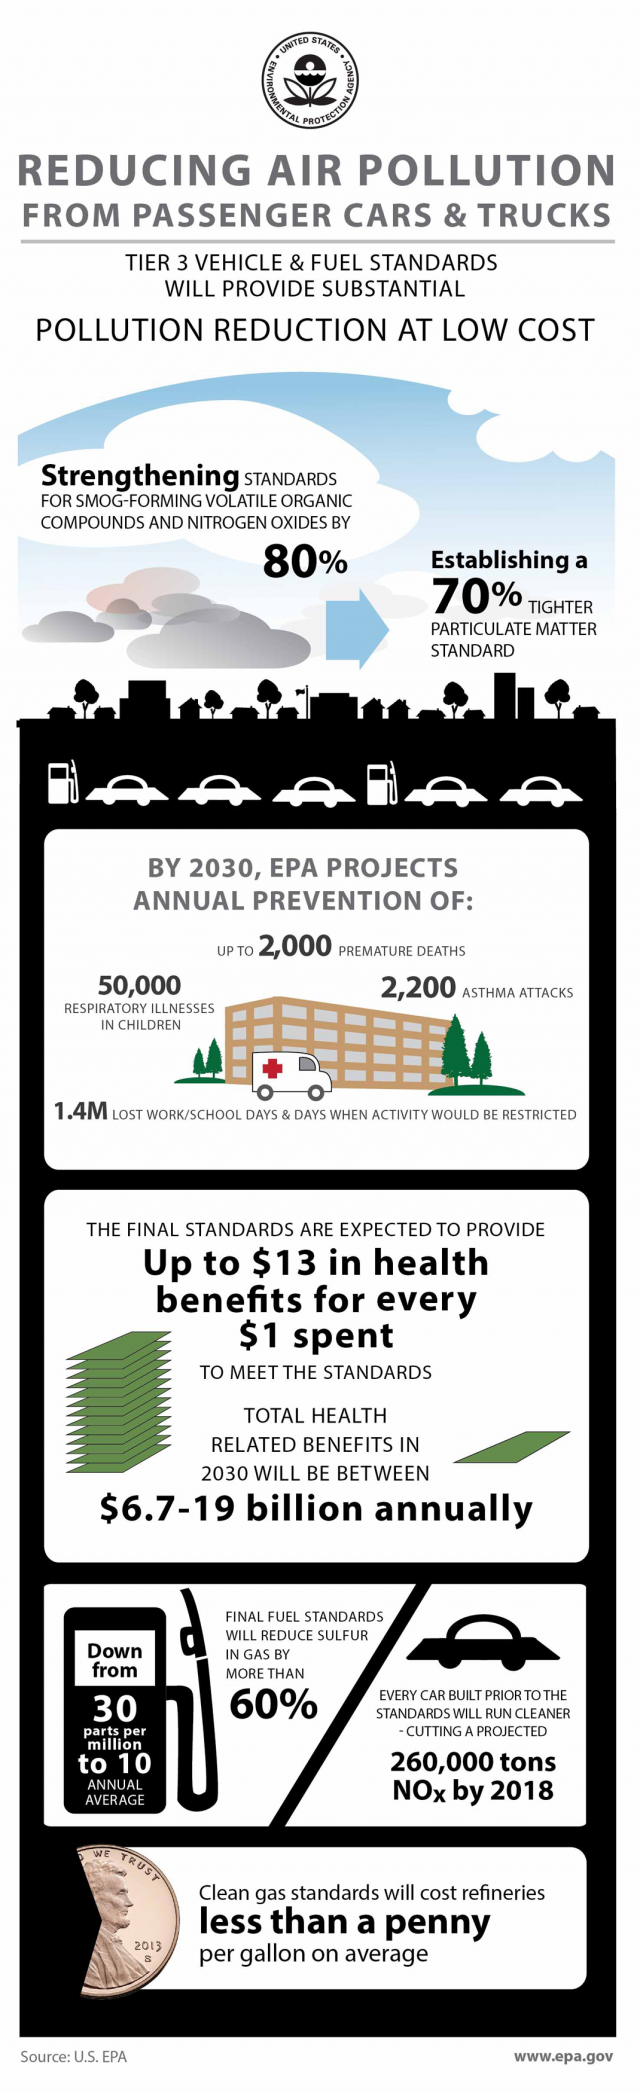 Infographic showing that Tier 3 vehicle and fuel standards will provide substantial pollution reduction at low cost, annual prevention projections for 2030, health benefits for final standards, and sulfur and nitrogen dioxide reductions.